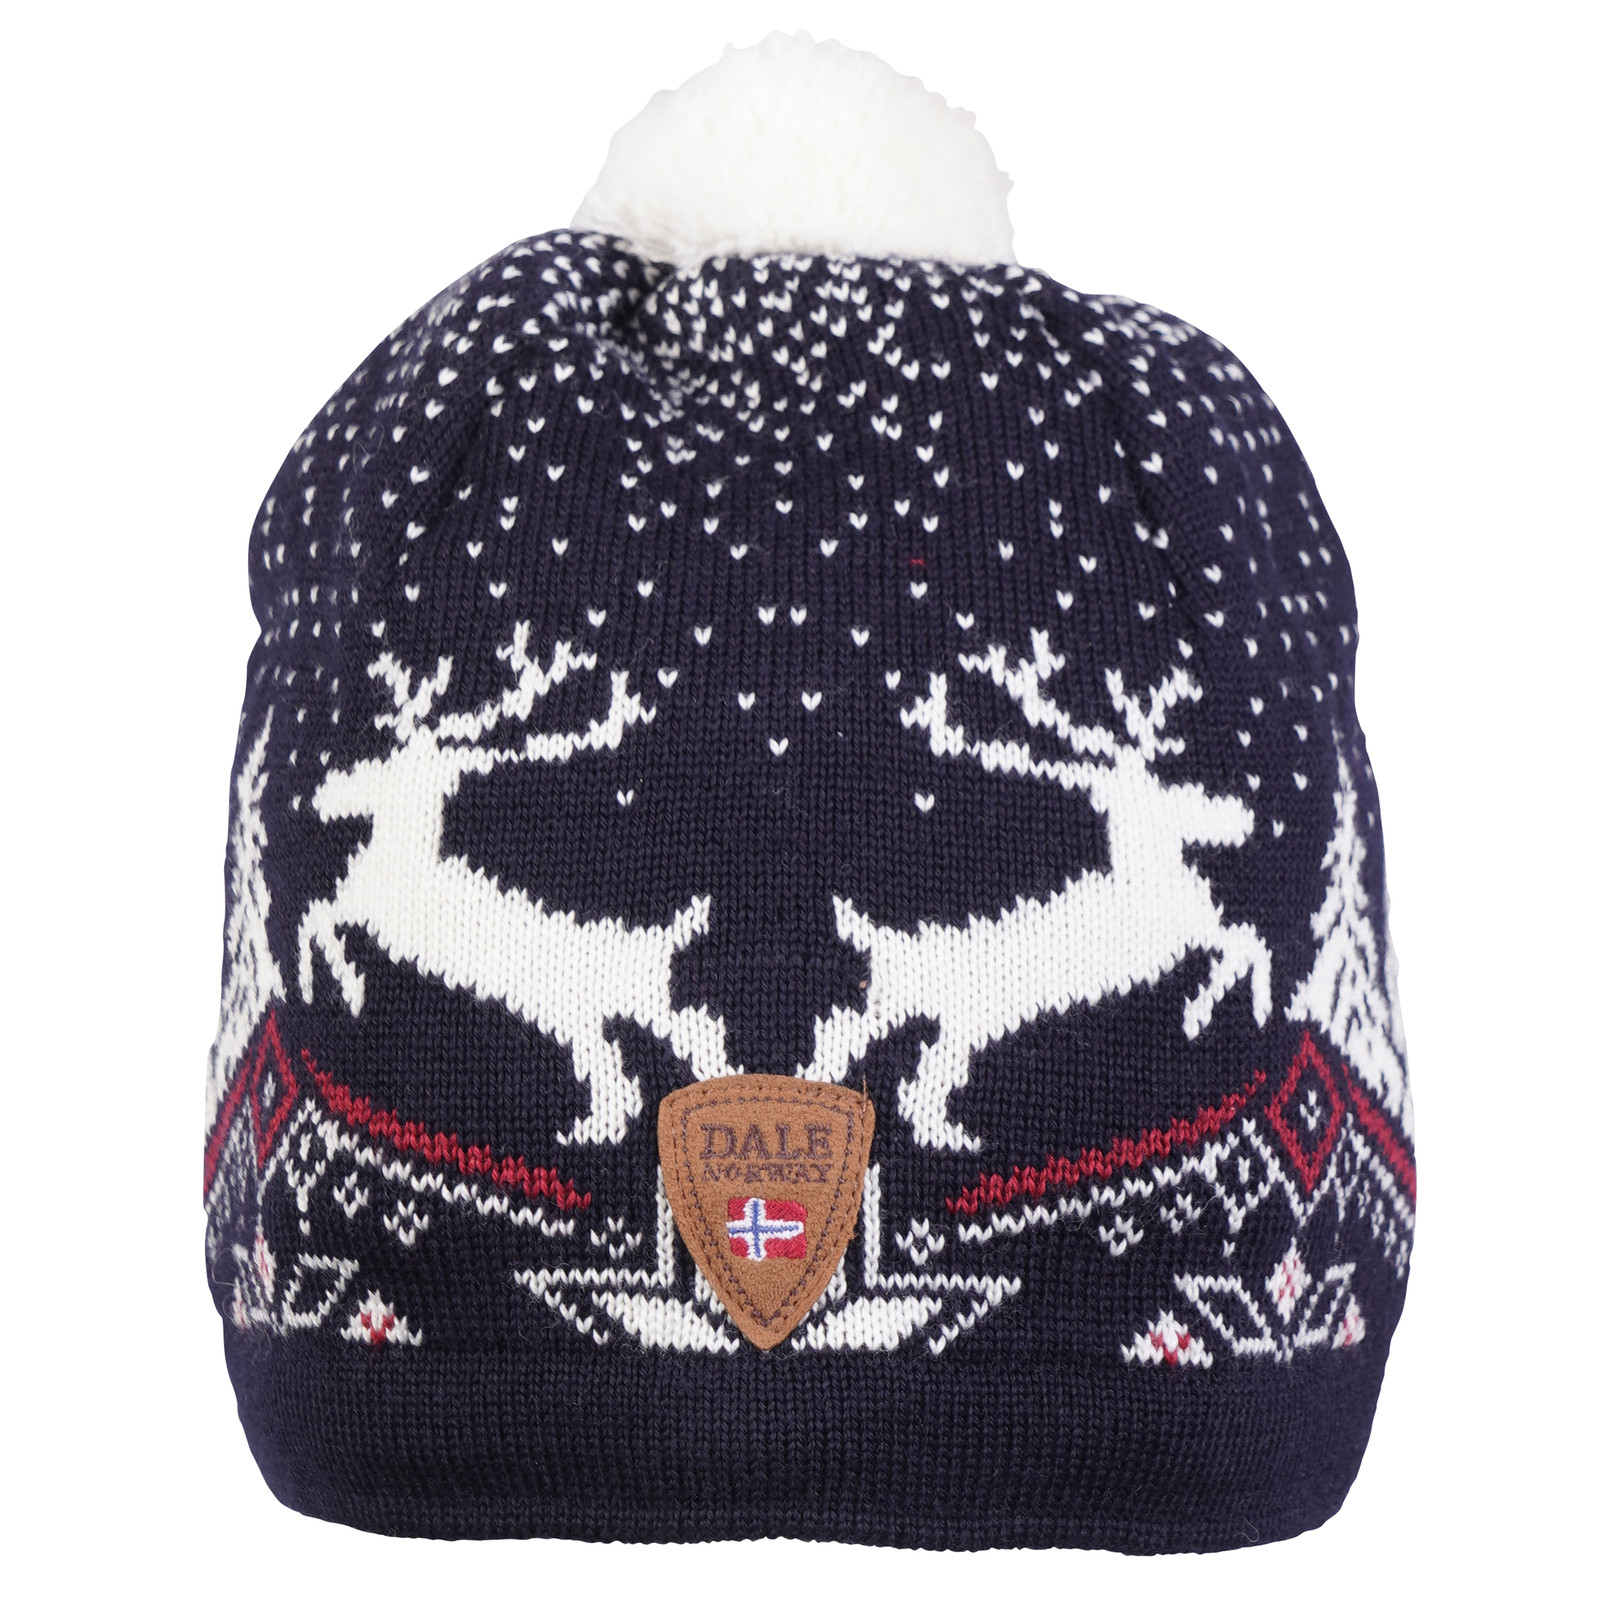 Dale of Norway Christmas Hat - Navy/Off White/Raspberry 48291-C front view